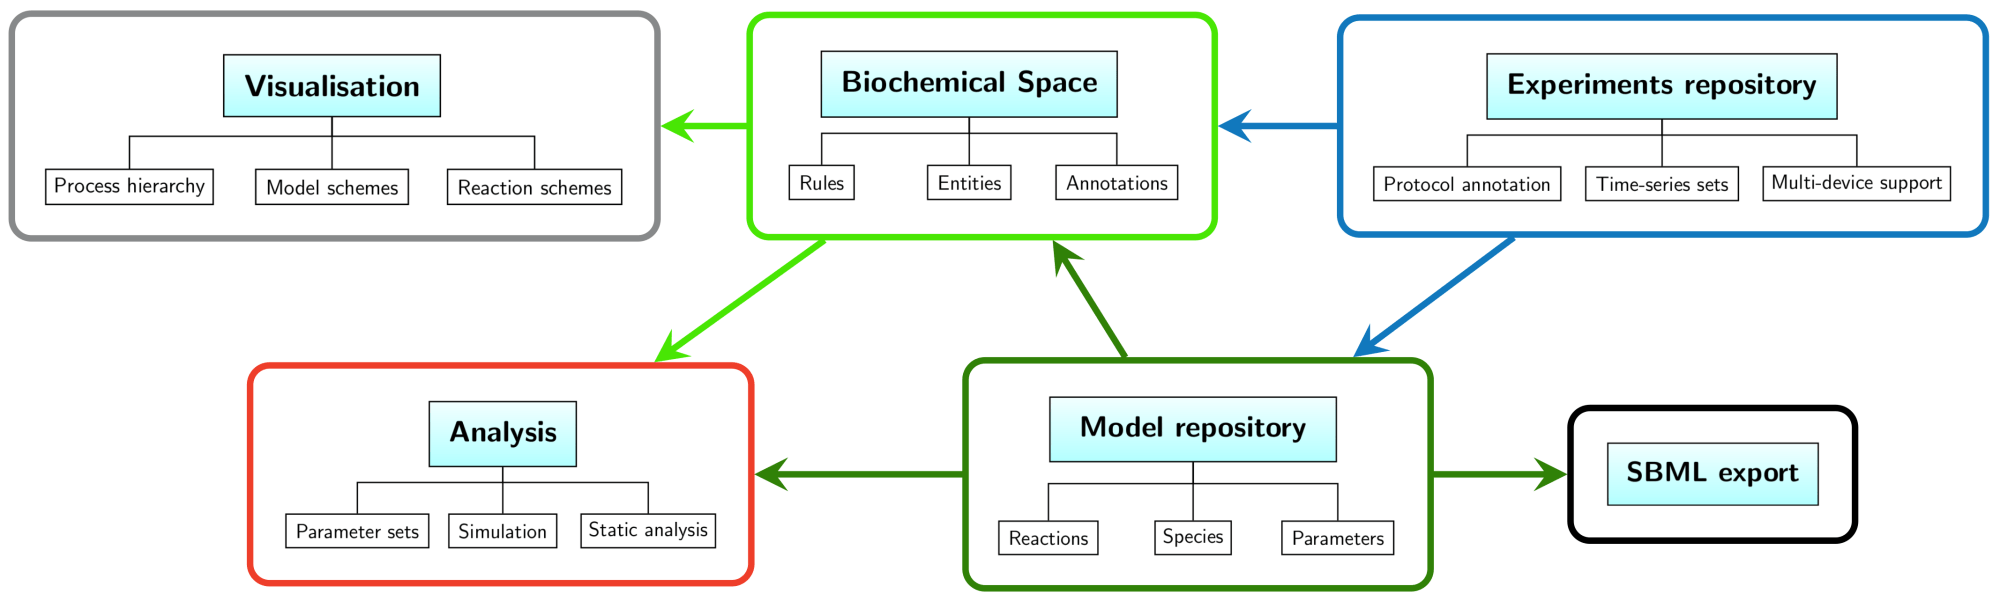 hight resolution of the main goal of the platform is to connect the world of biological knowledge with benefits of mathematical description of dynamic processes